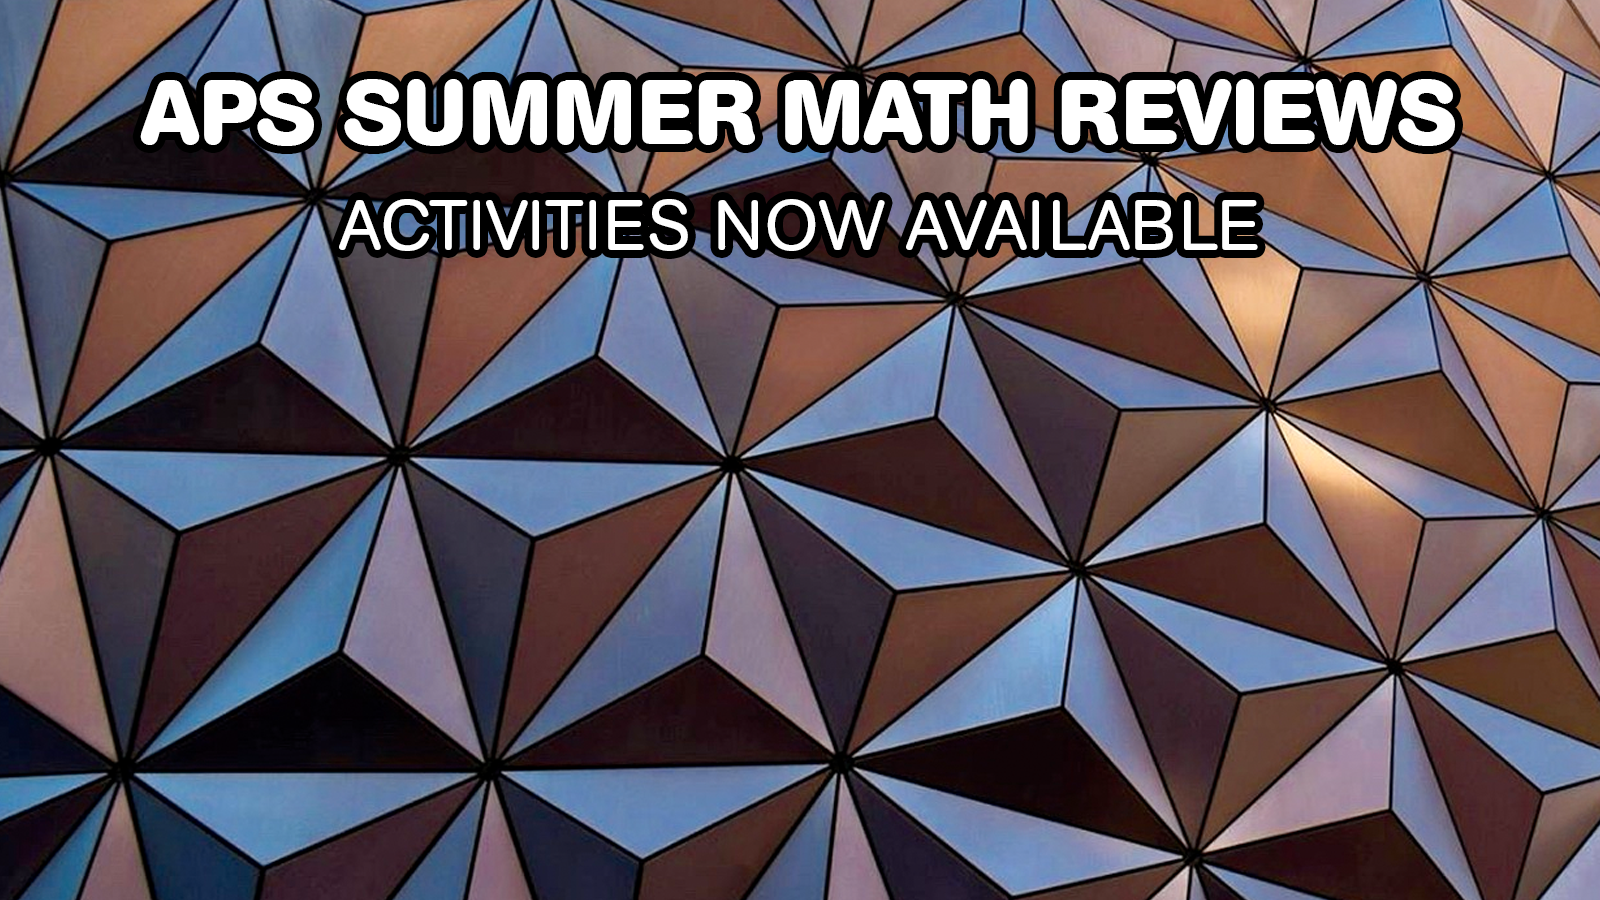 Summer Math Reviews